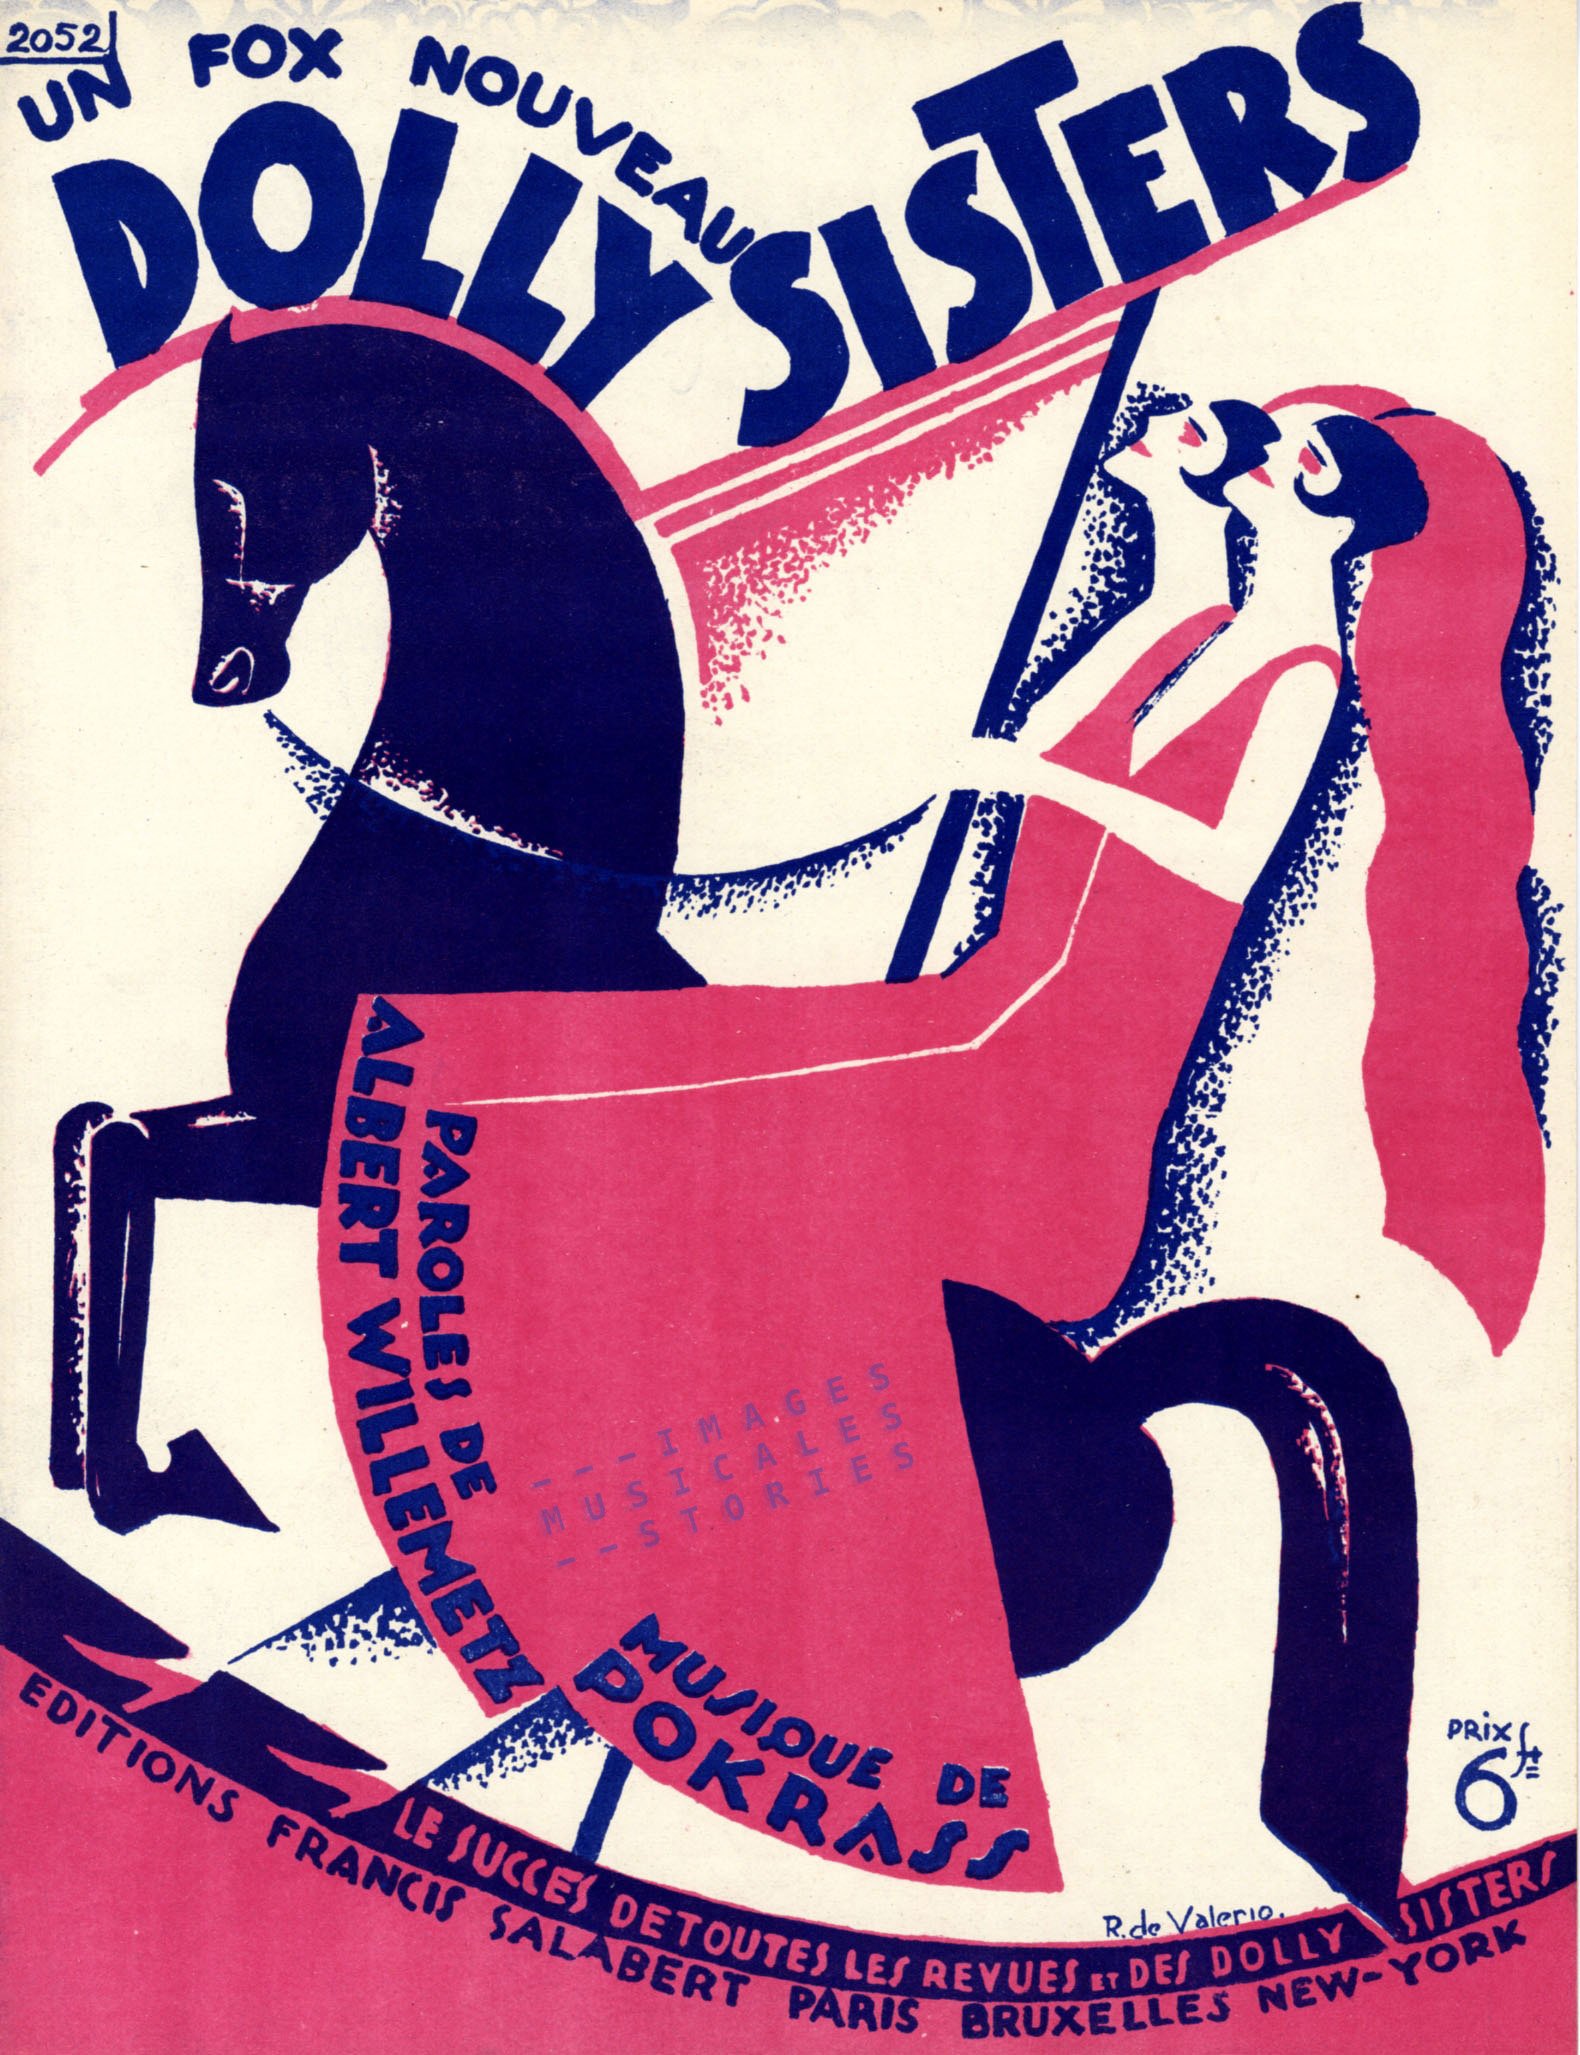 Dolly Sisters, illustrated by de Valerio